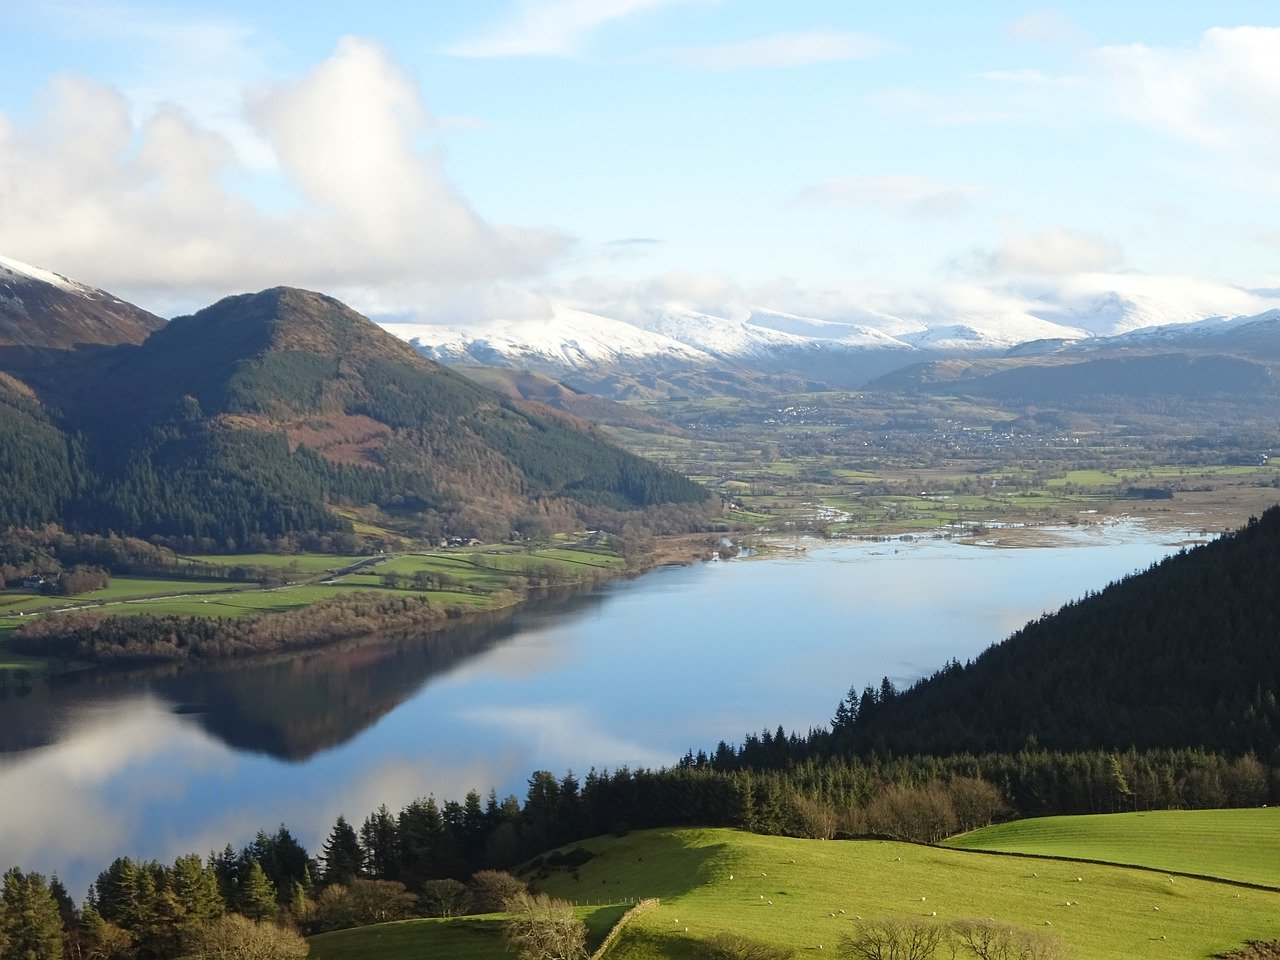 Weekend countryside breaks from London, lake surrounded by forest and mountains in the Lake District